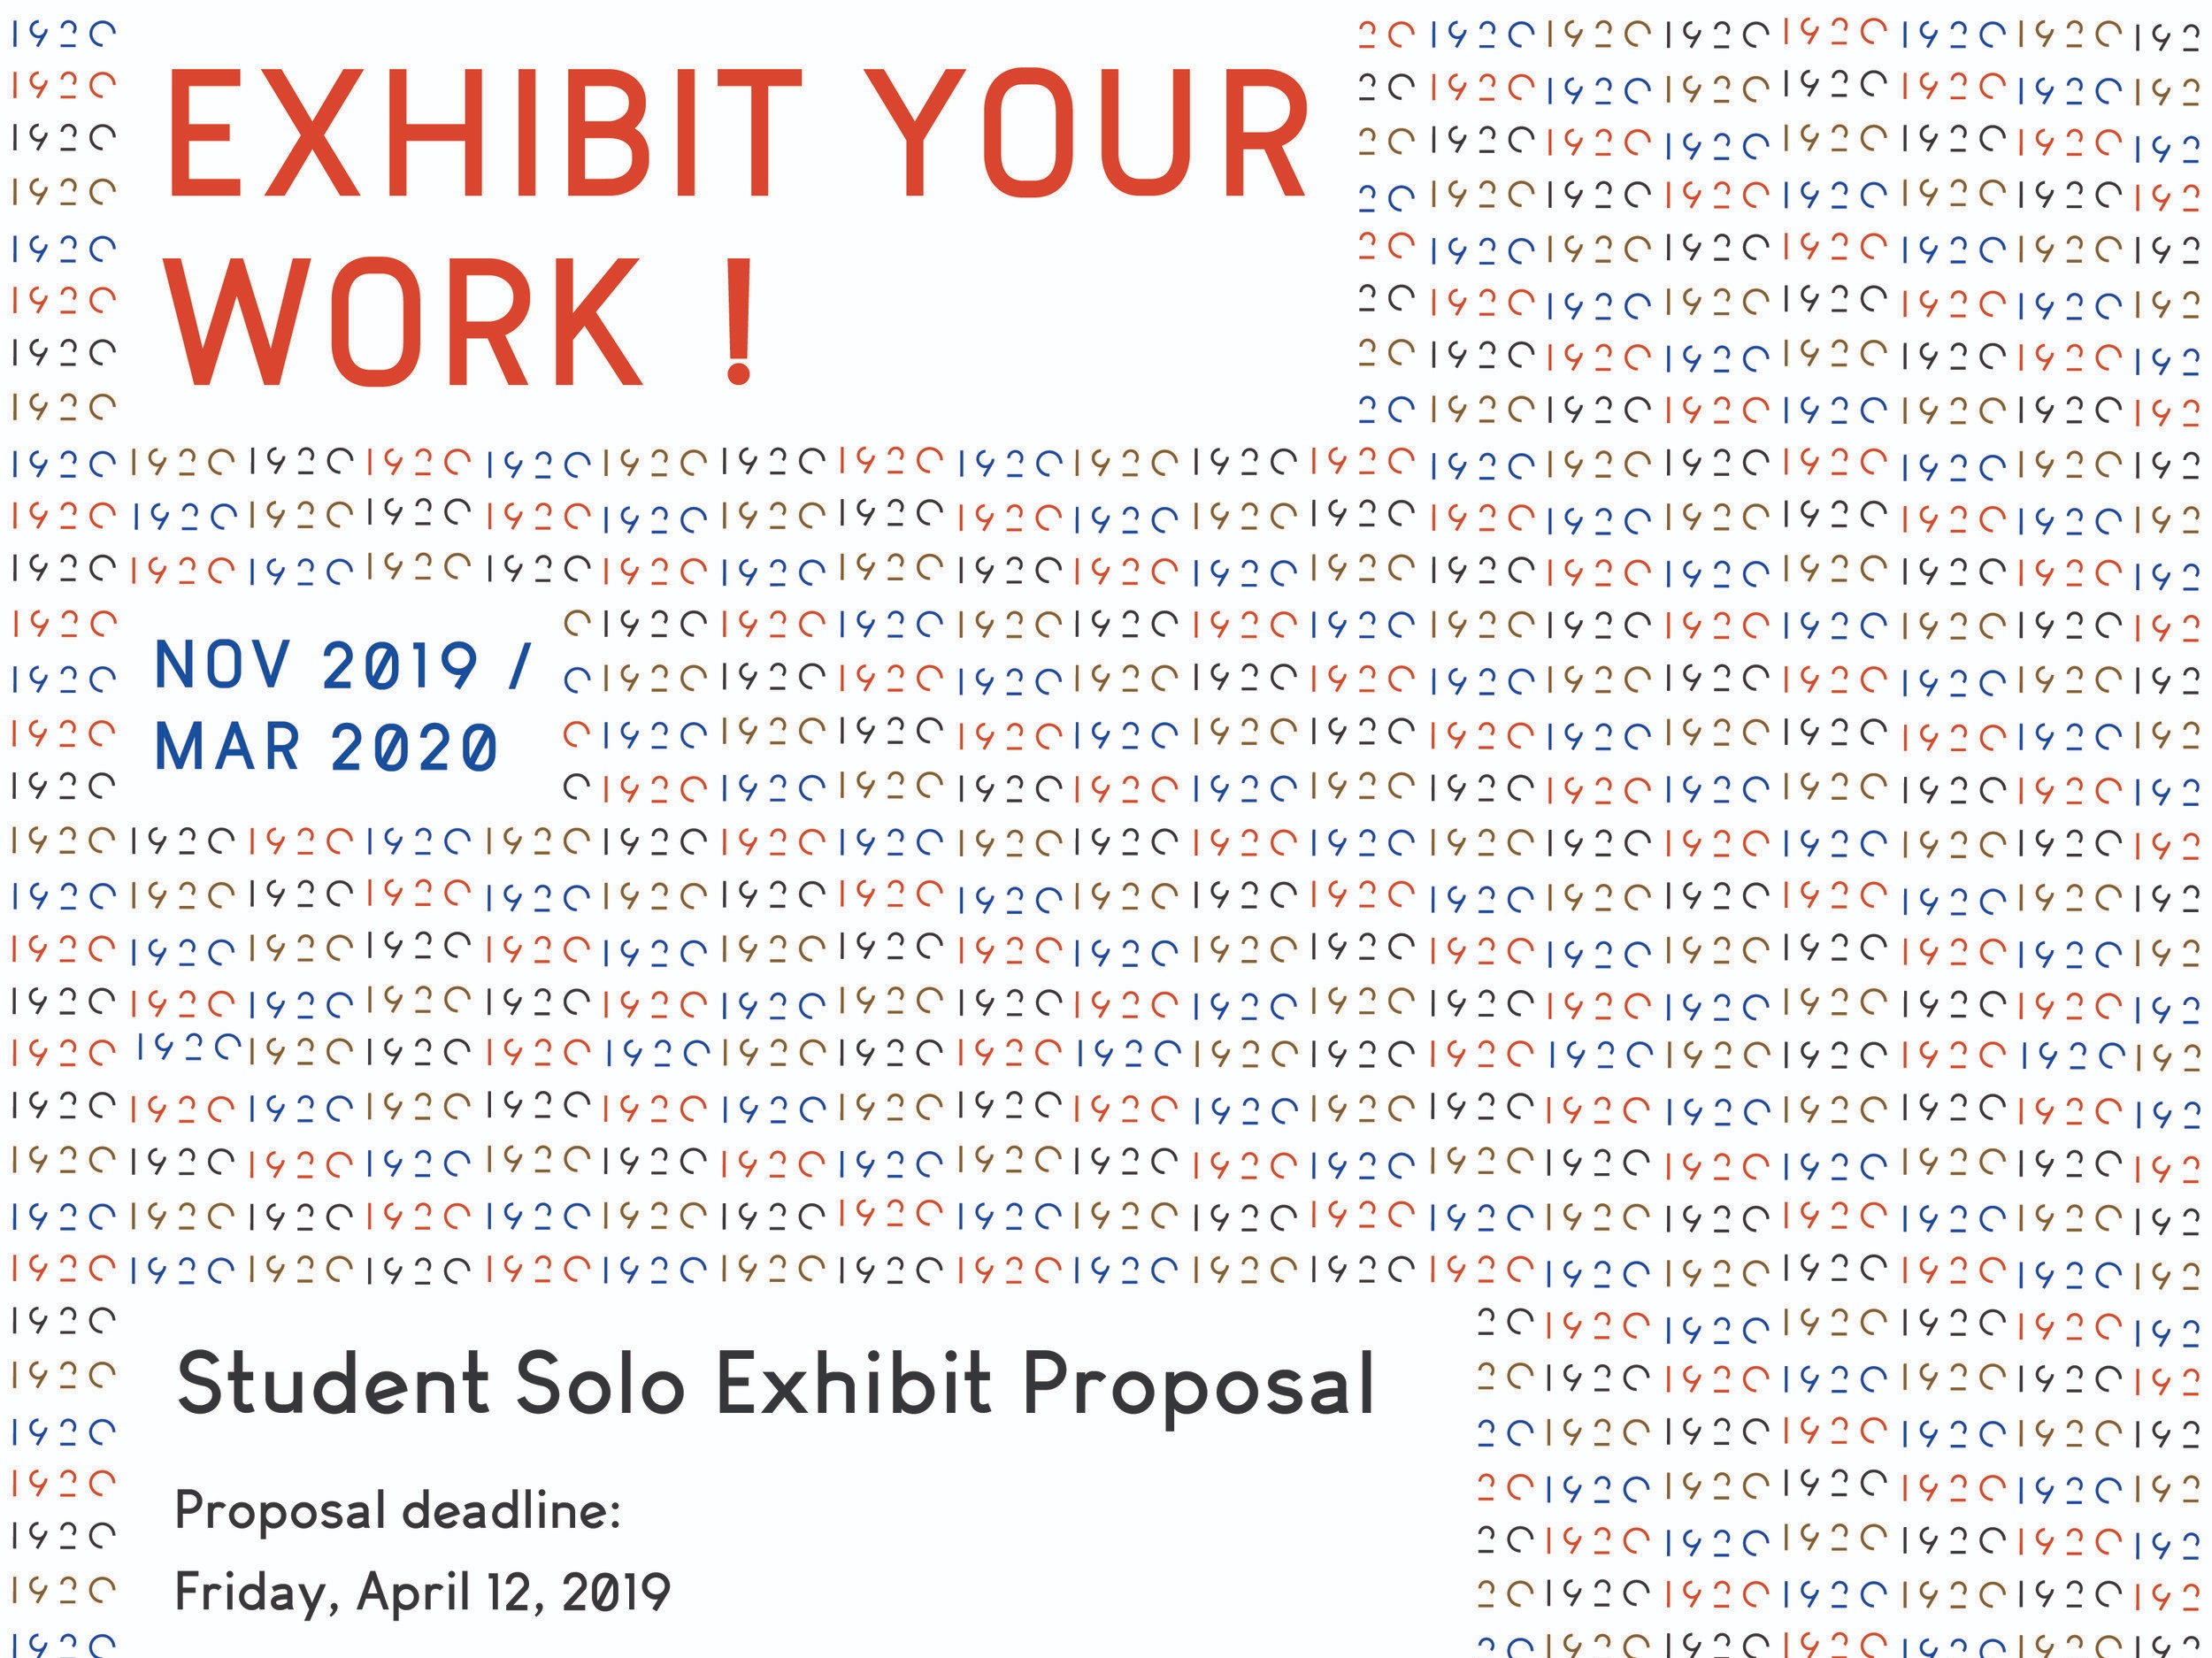 STUDENT SOLO EXHIBIT - PROPOSE YOUR EXHIBIT